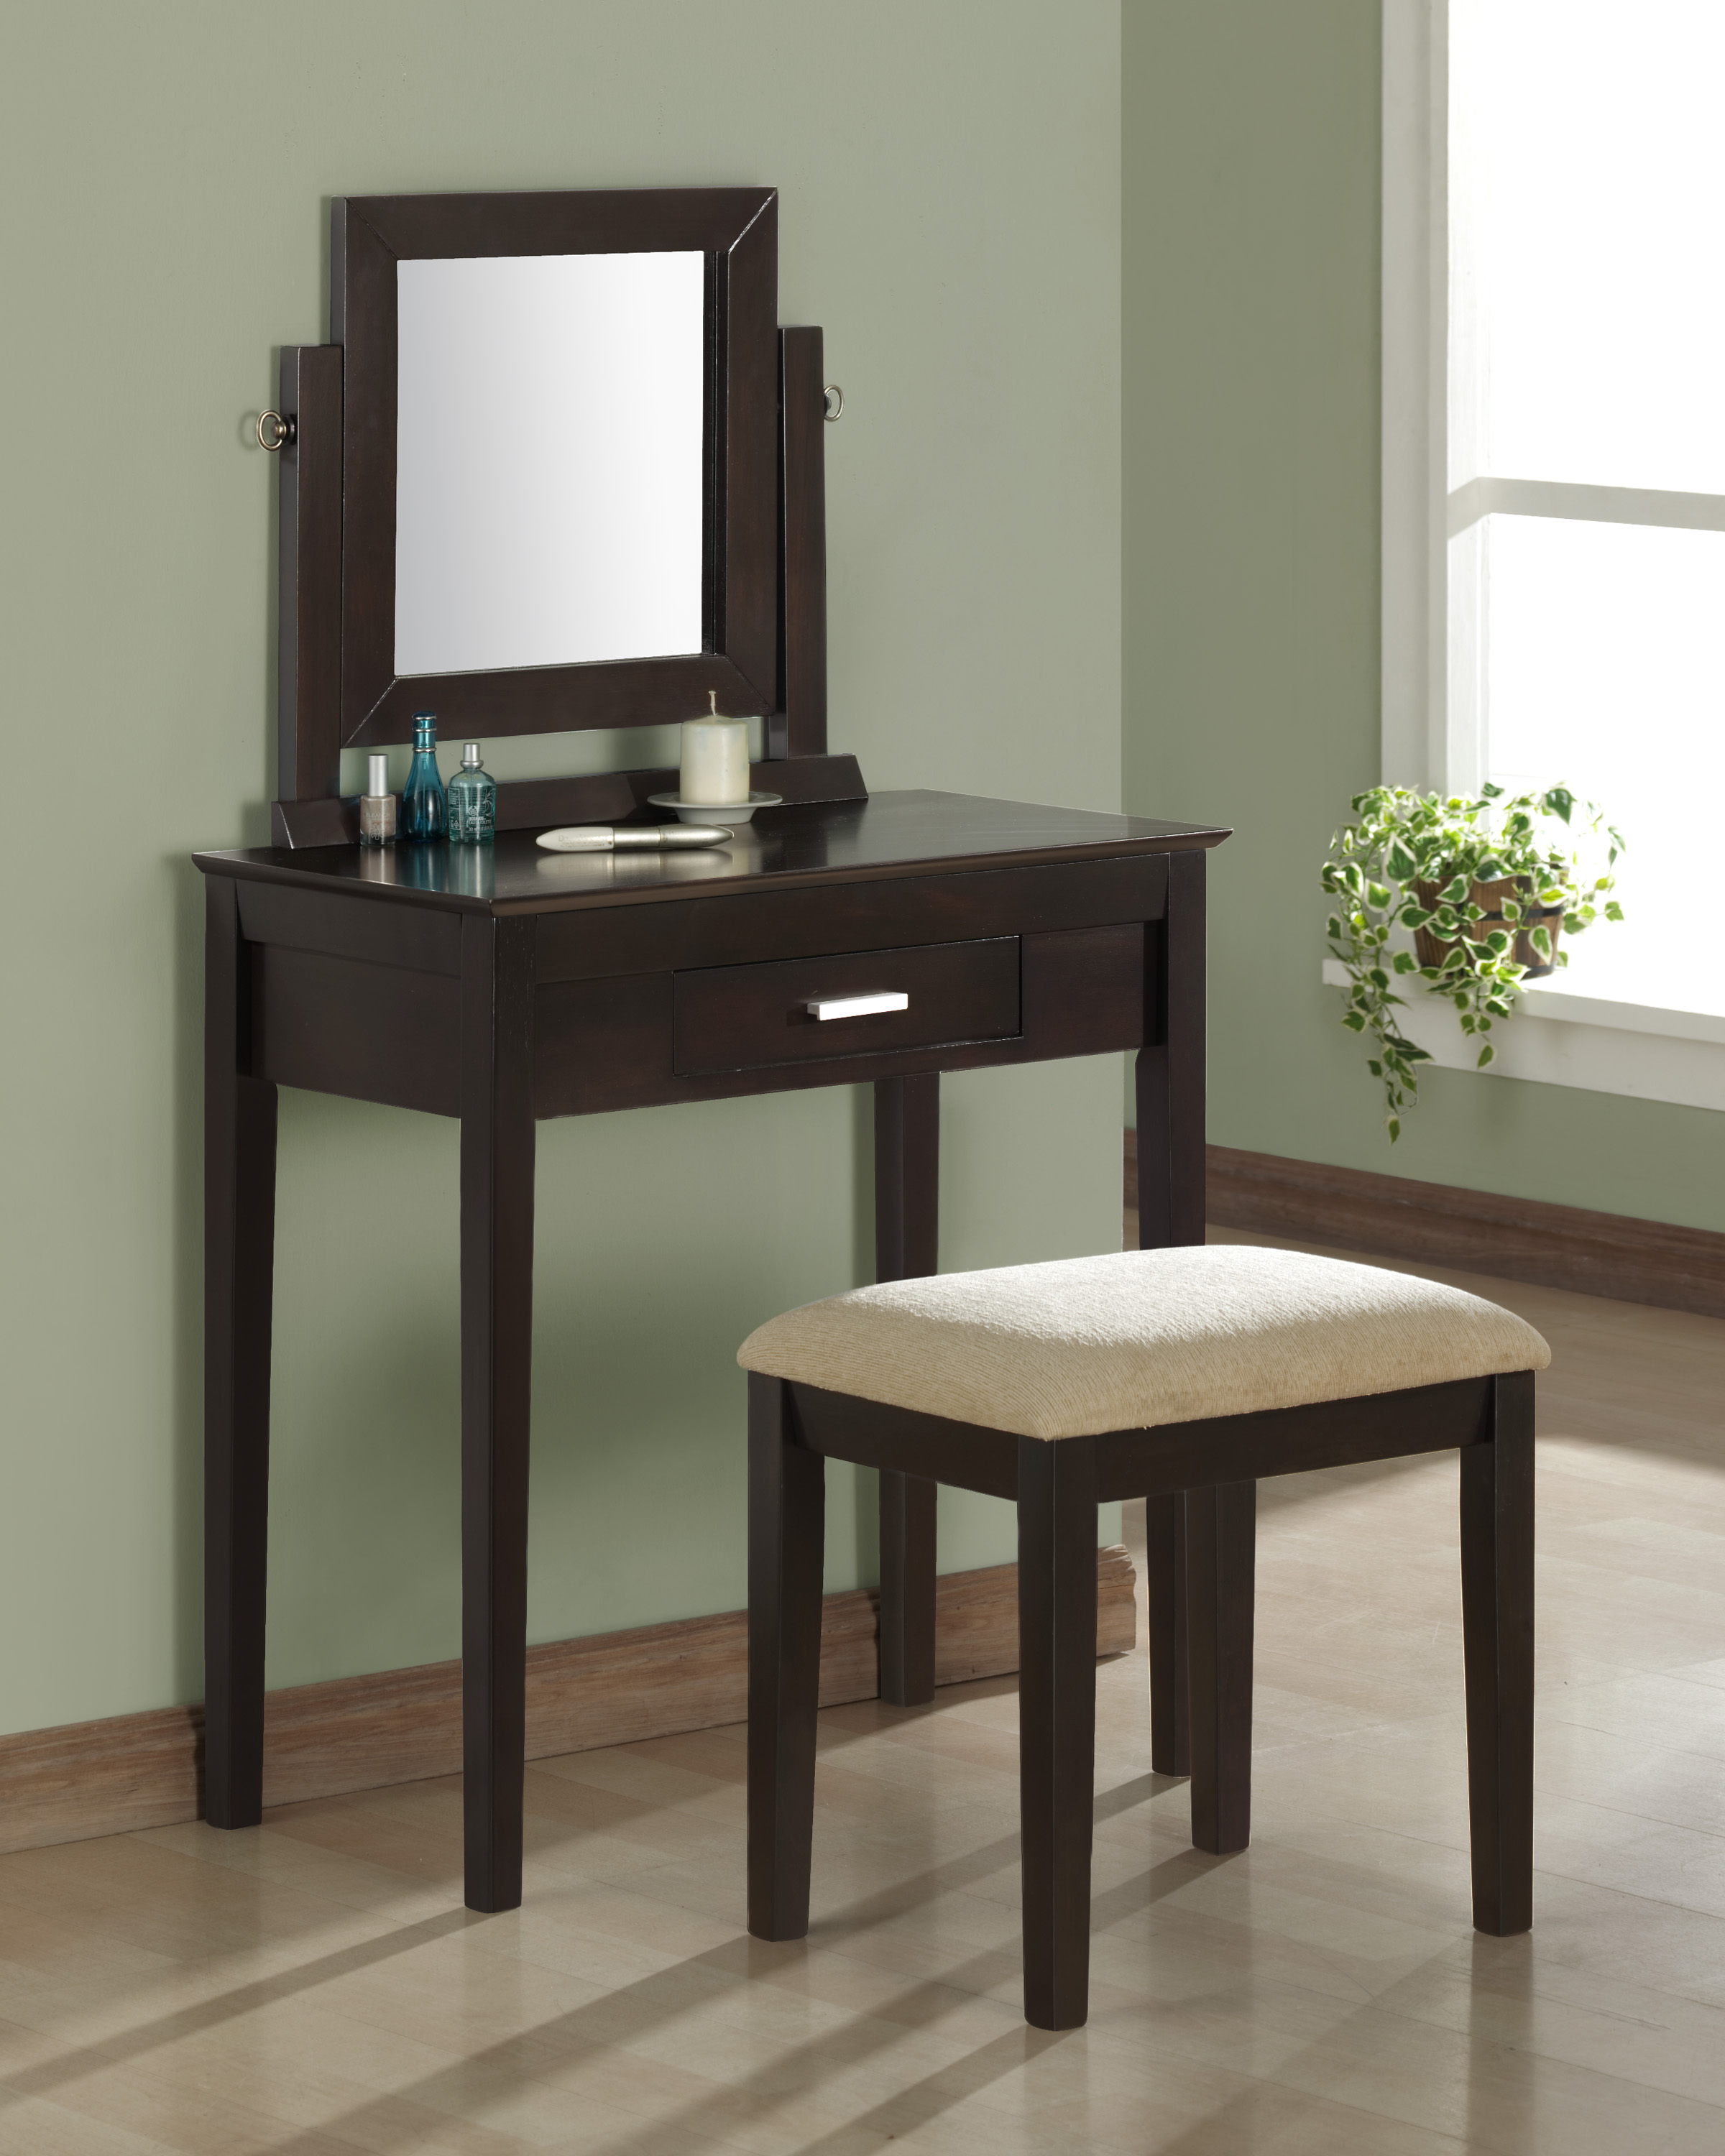 planning bedroom vanity with storage. bedroom vanity sets interior ...